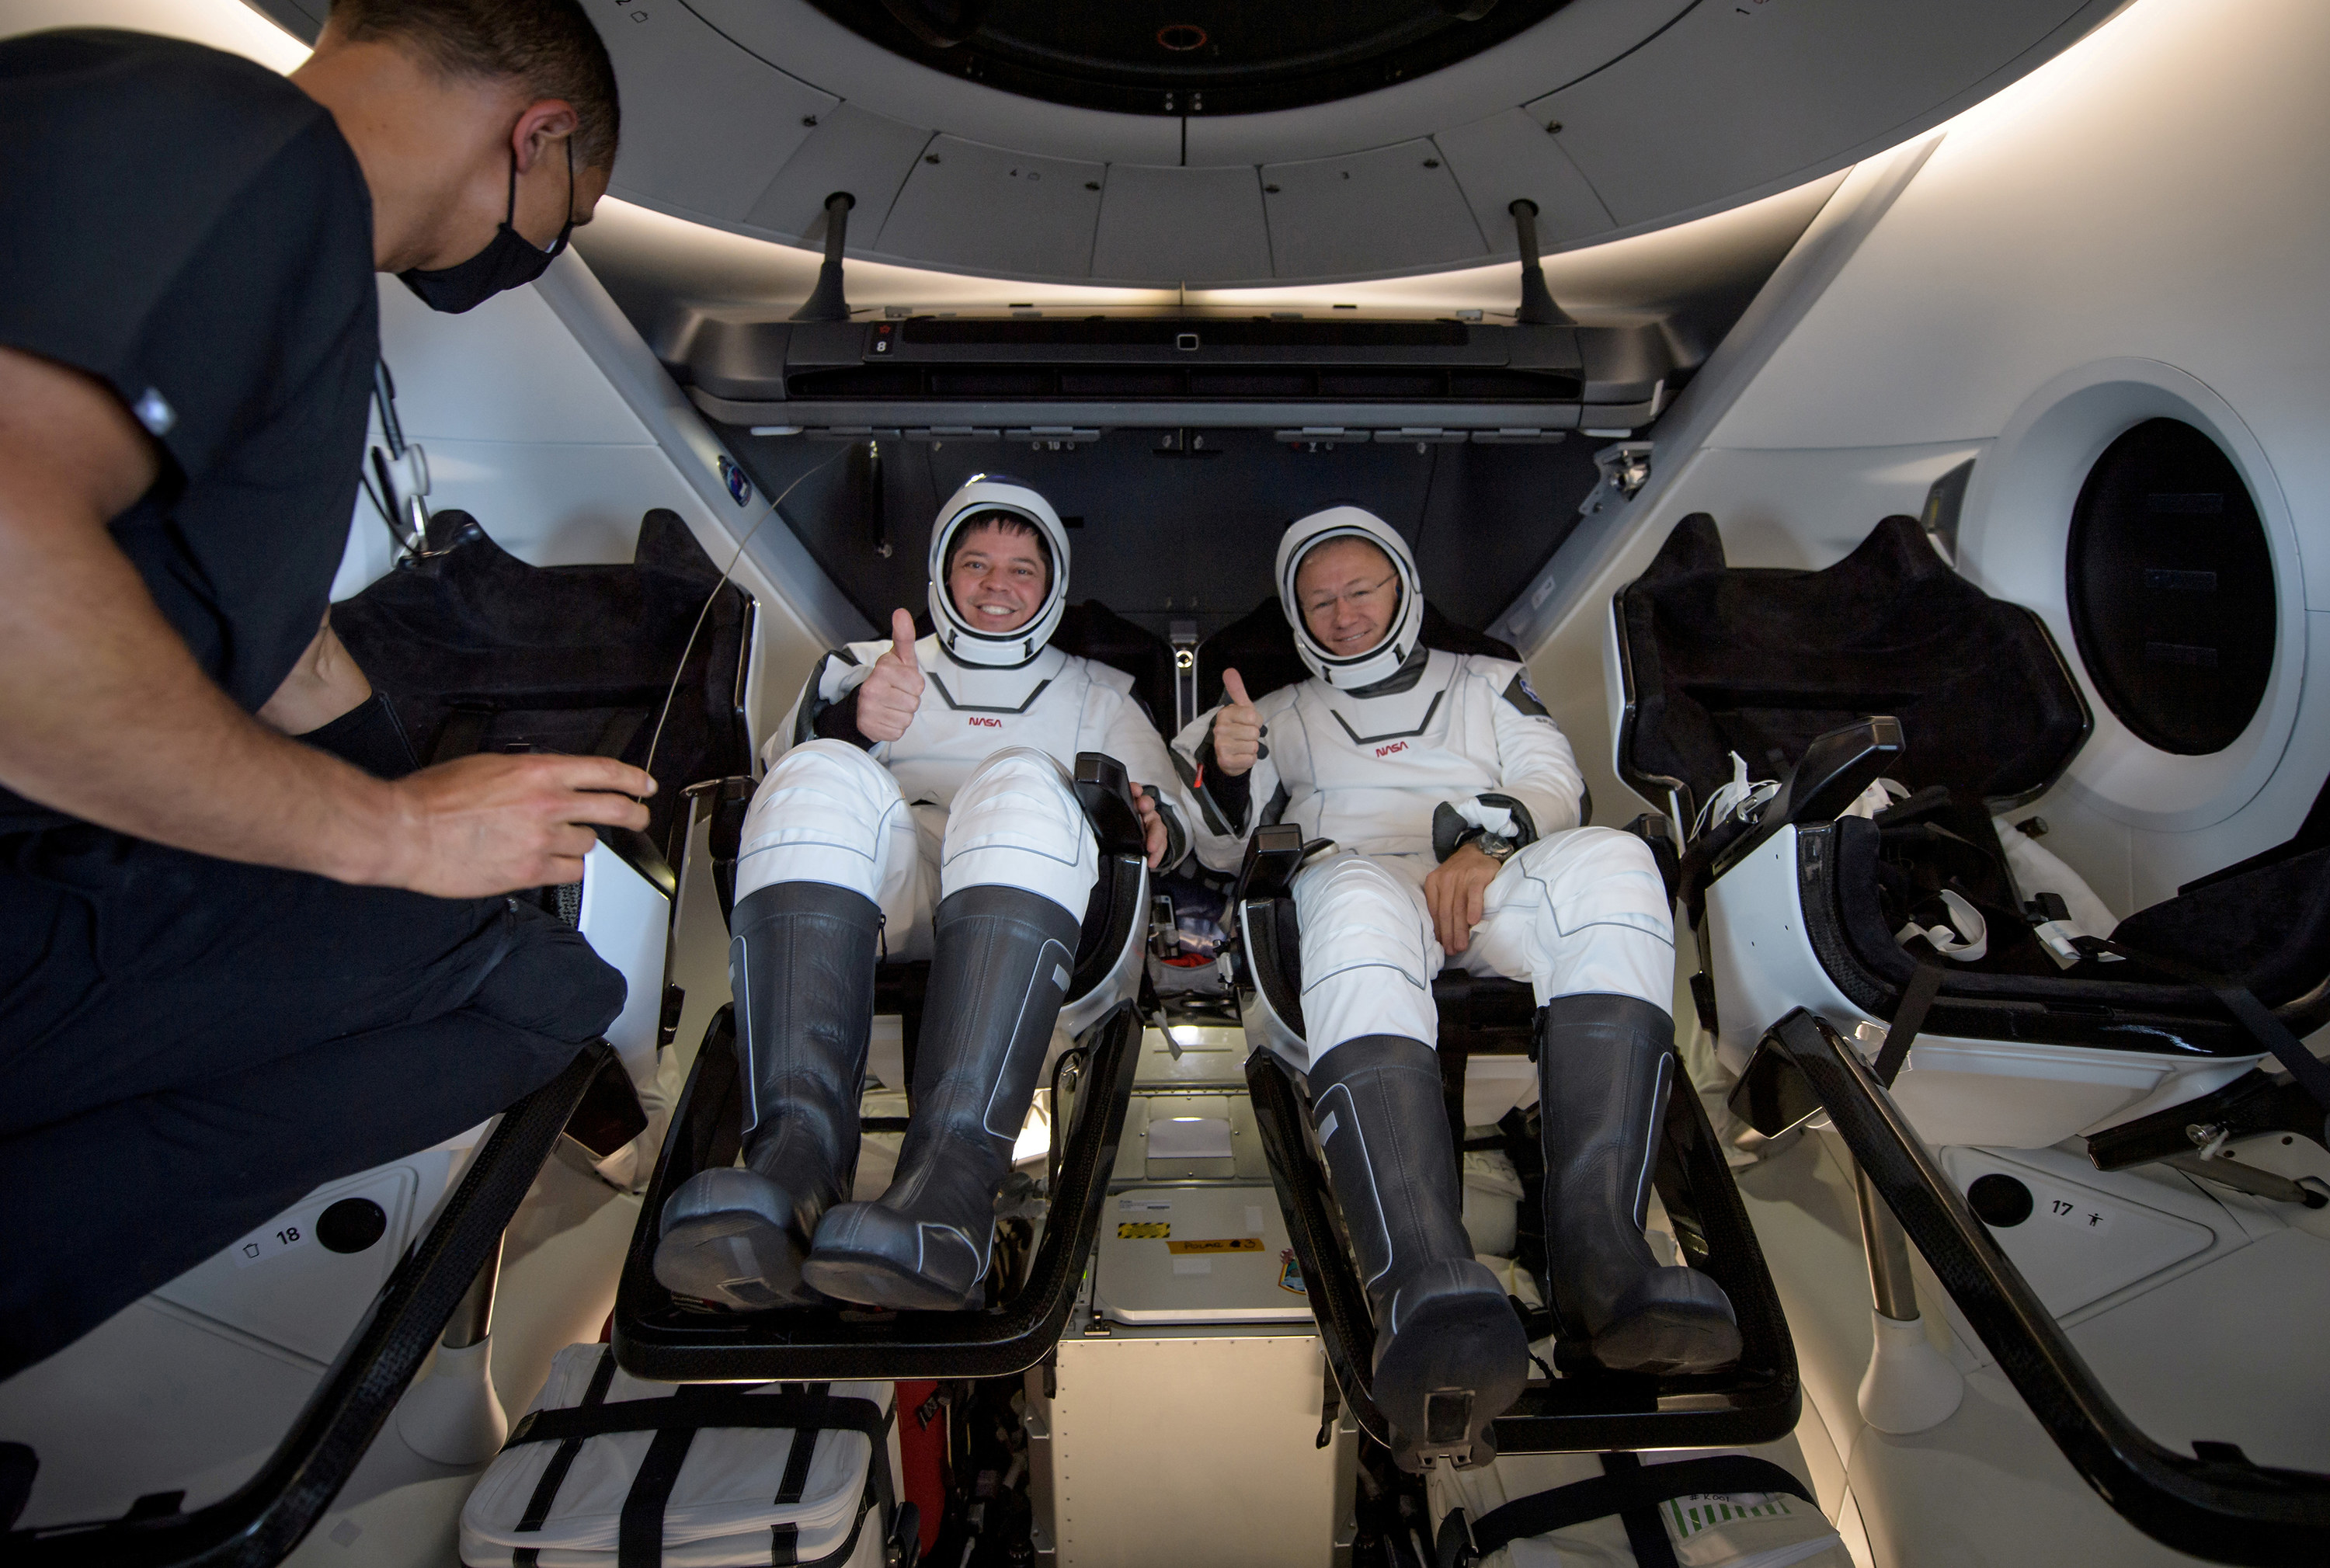 Two astronauts smile and give a thumbs-up as a man enters the capsule